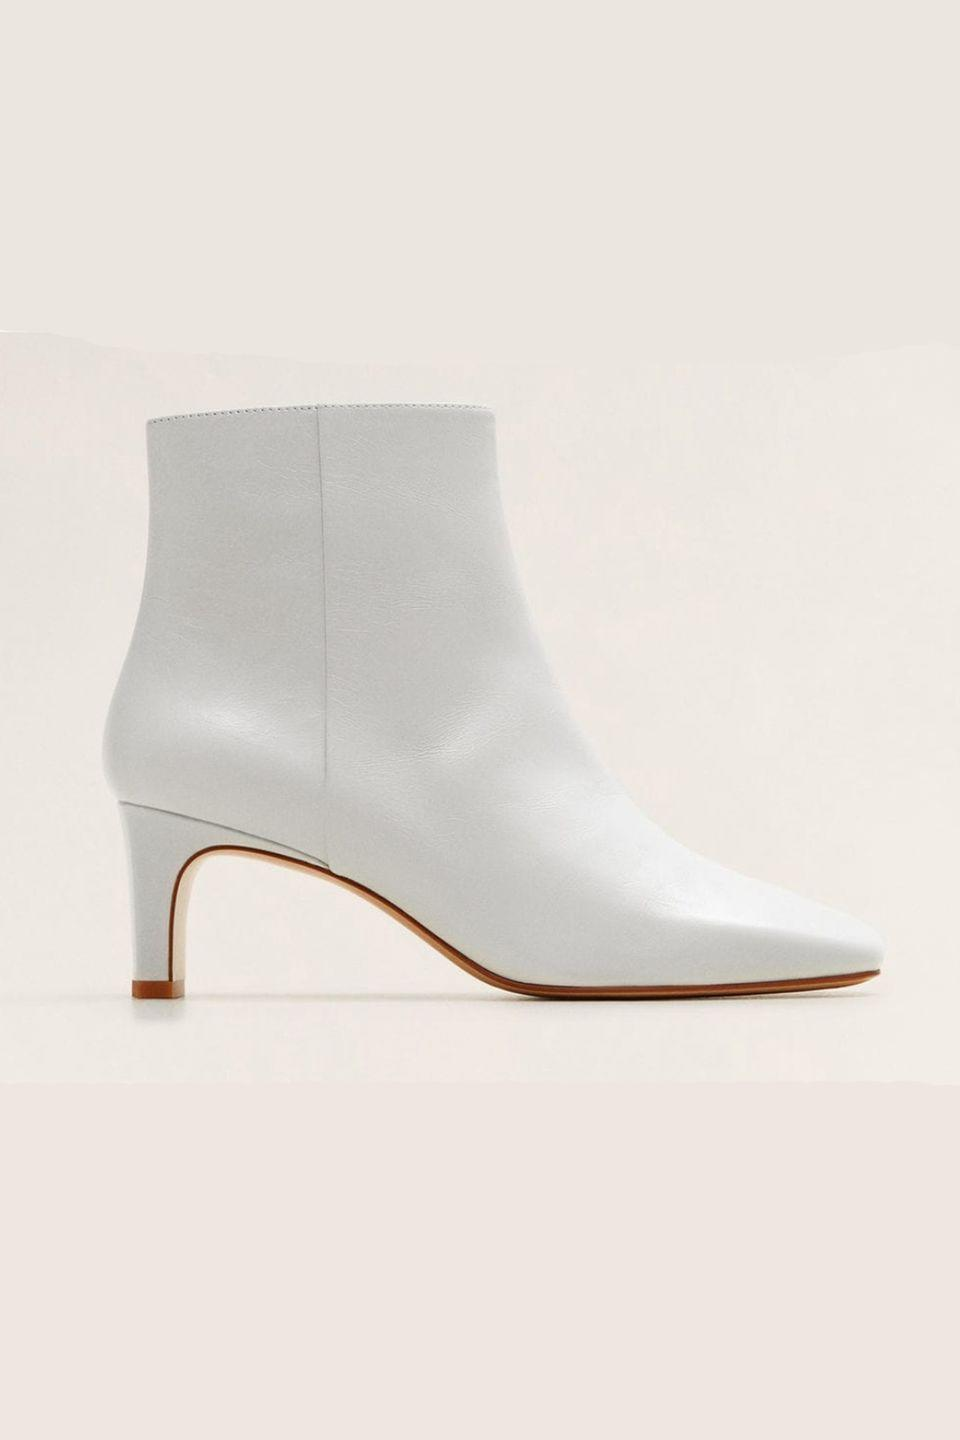 """<p><a class=""""link rapid-noclick-resp"""" href=""""https://go.redirectingat.com?id=127X1599956&url=https%3A%2F%2Fshop.mango.com%2Fgb%2Fwomen%2Fshoes-boots-and-ankle-boots%2Fheel-leather-ankle-boot_43040606.html%3Fc%3D01%26n%3D1%26s%3Dsearch&sref=https%3A%2F%2Fwww.harpersbazaar.com%2Fuk%2Ffashion%2Fshows-trends%2Fg18195015%2Fbest-white-boots%2F"""" rel=""""nofollow noopener"""" target=""""_blank"""" data-ylk=""""slk:SHOP NOW"""">SHOP NOW</a><br></p><p>This offering from Mango looks far more expensive than its price tag.</p><p>Leather boots, £69.99, Mango</p>"""